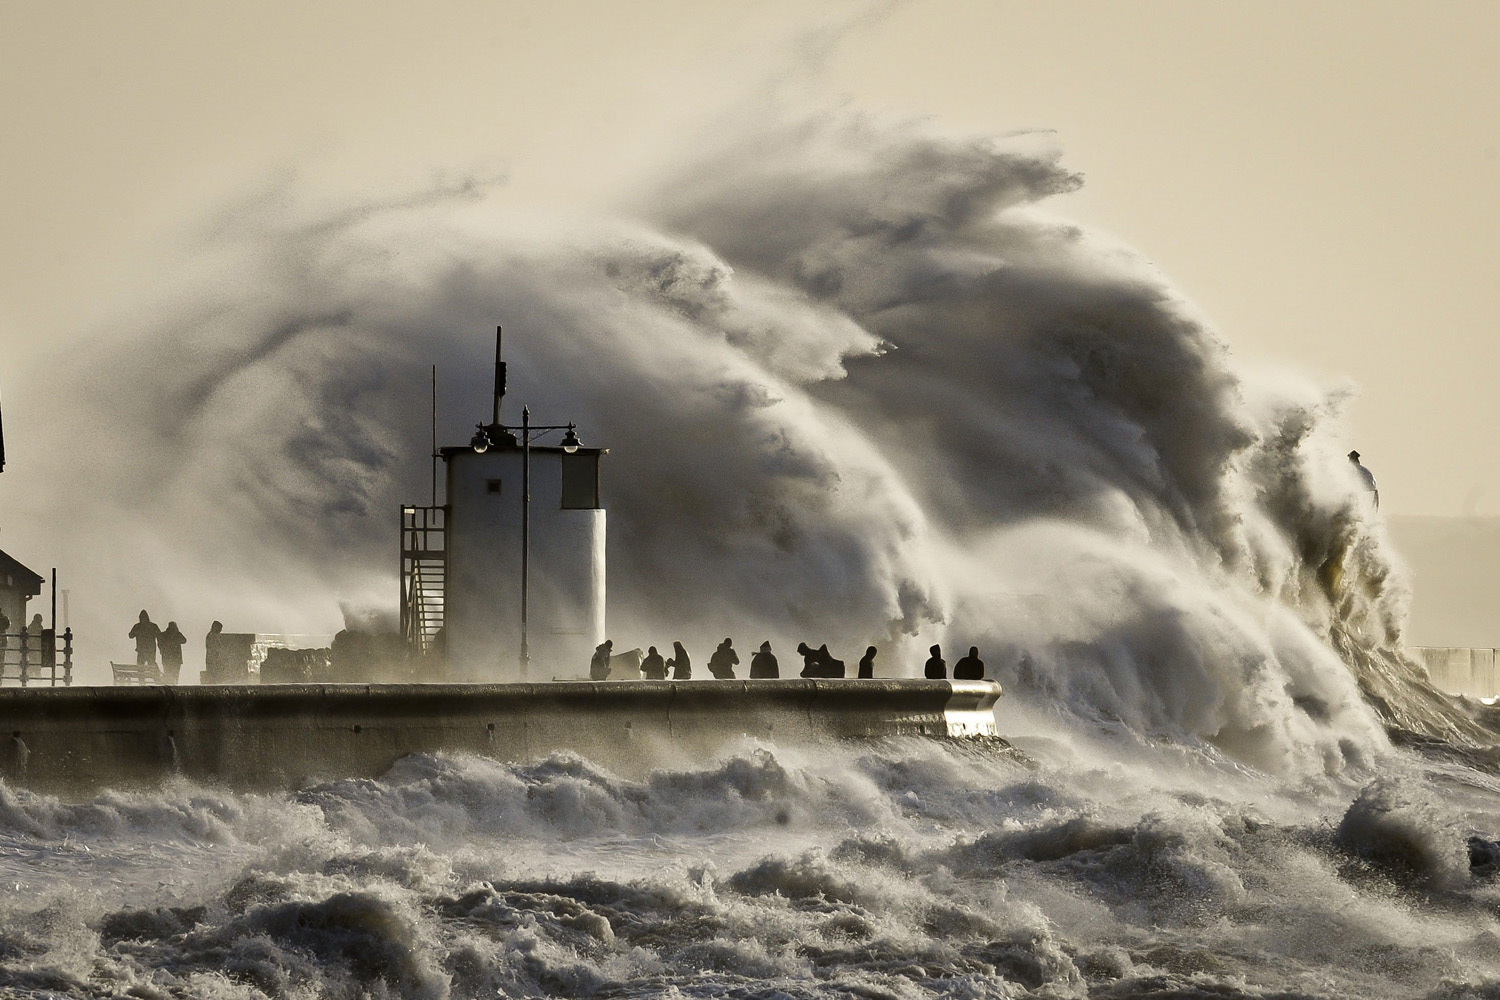 Jan. 6, 2014. People watch and photograph enormous waves as they break on Porthcawl harbour, South Wales, where very strong winds and high seas create dangerous weather conditions.